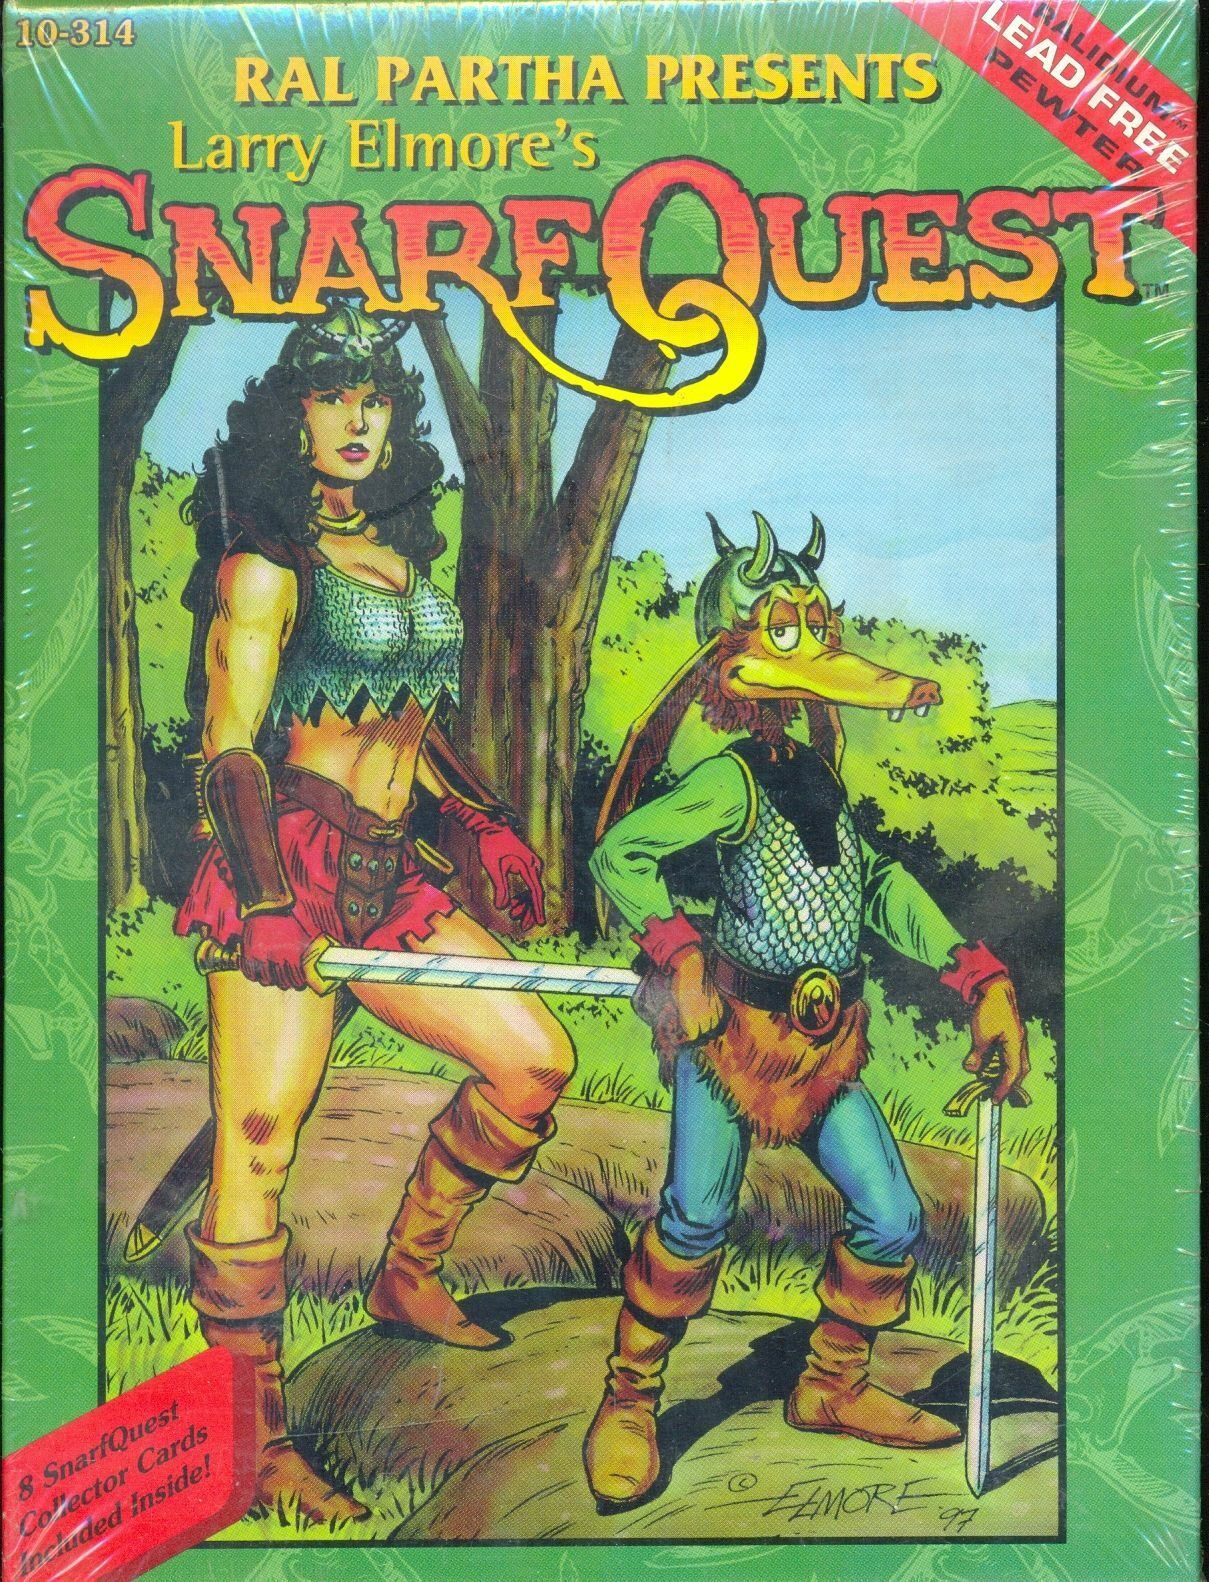 RAL PARTHA 10-314 LARRY ELMORE SNARF QUEST